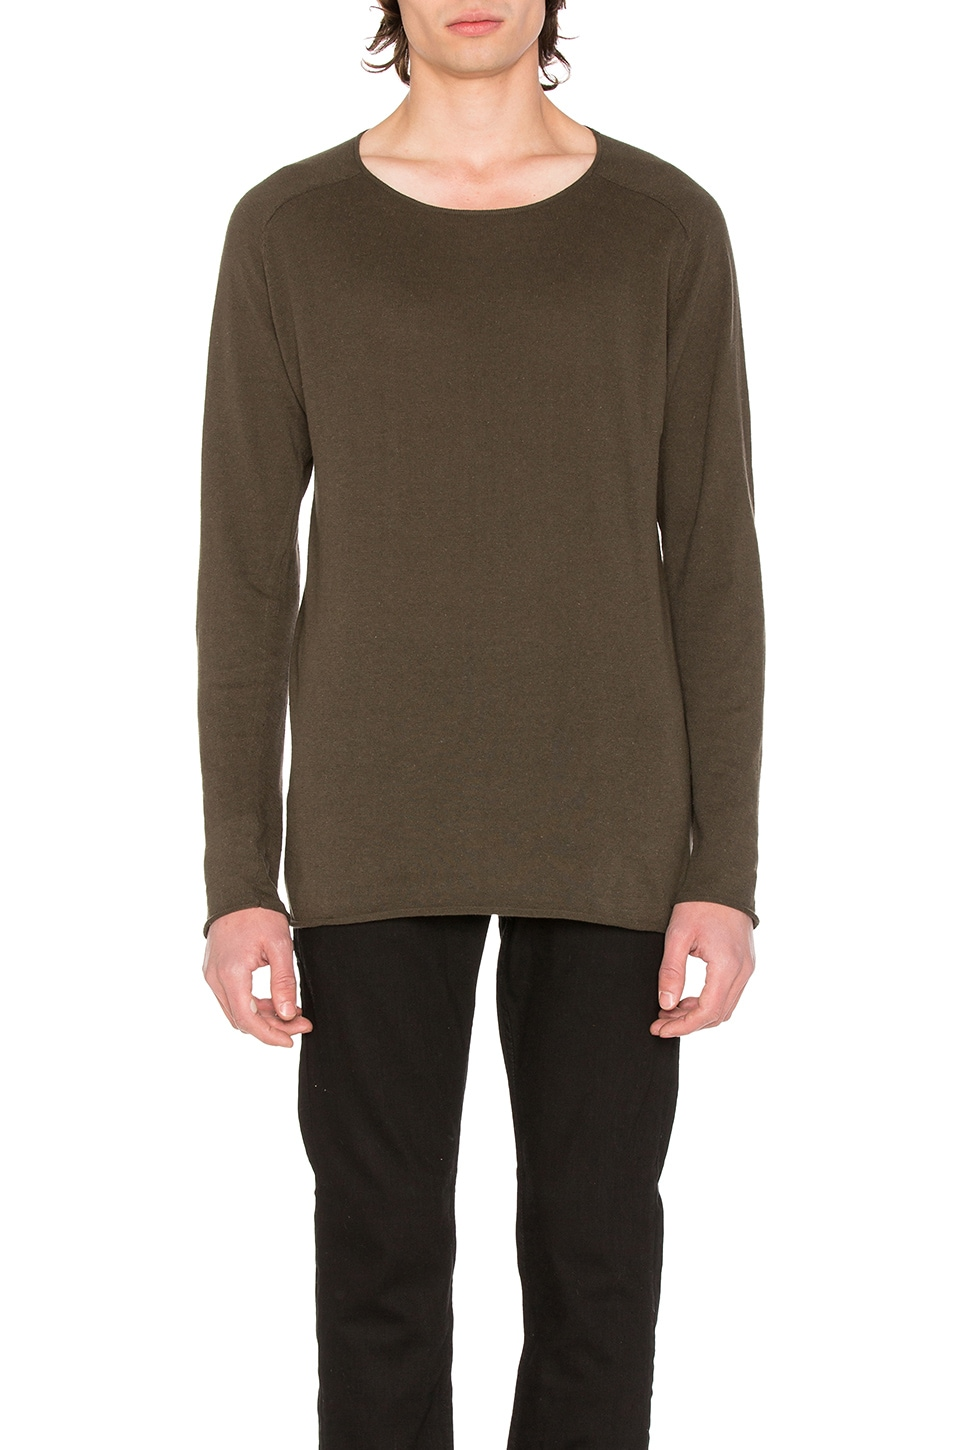 Colby Sweater by Publish